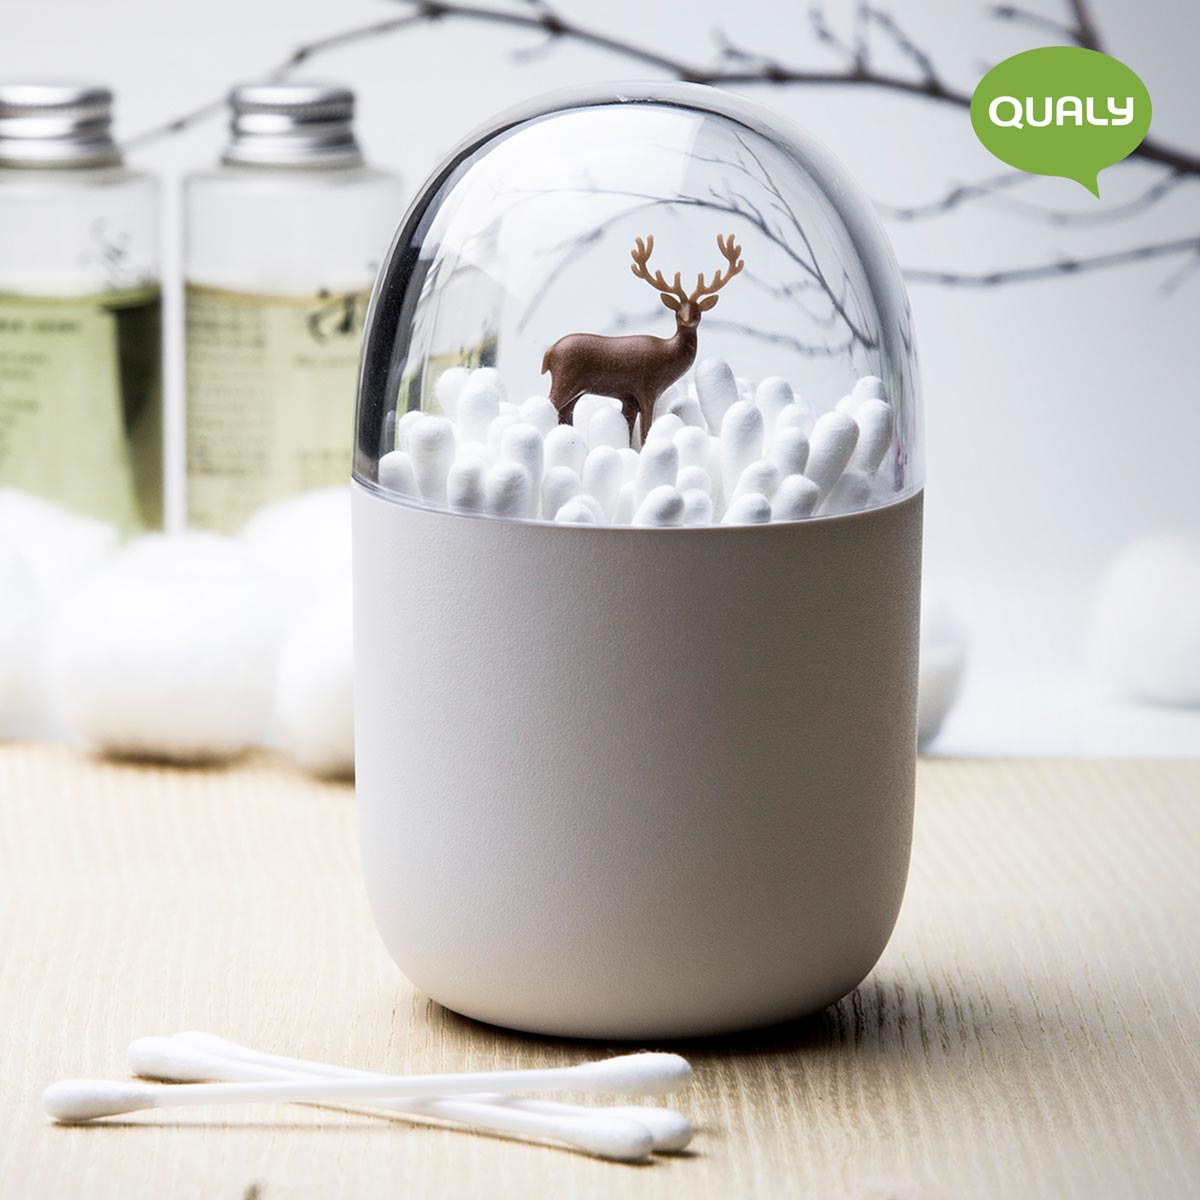 Cotton Bud Holder Organiser Perfectly Designed Great For Keeping Cotton Bud Safe